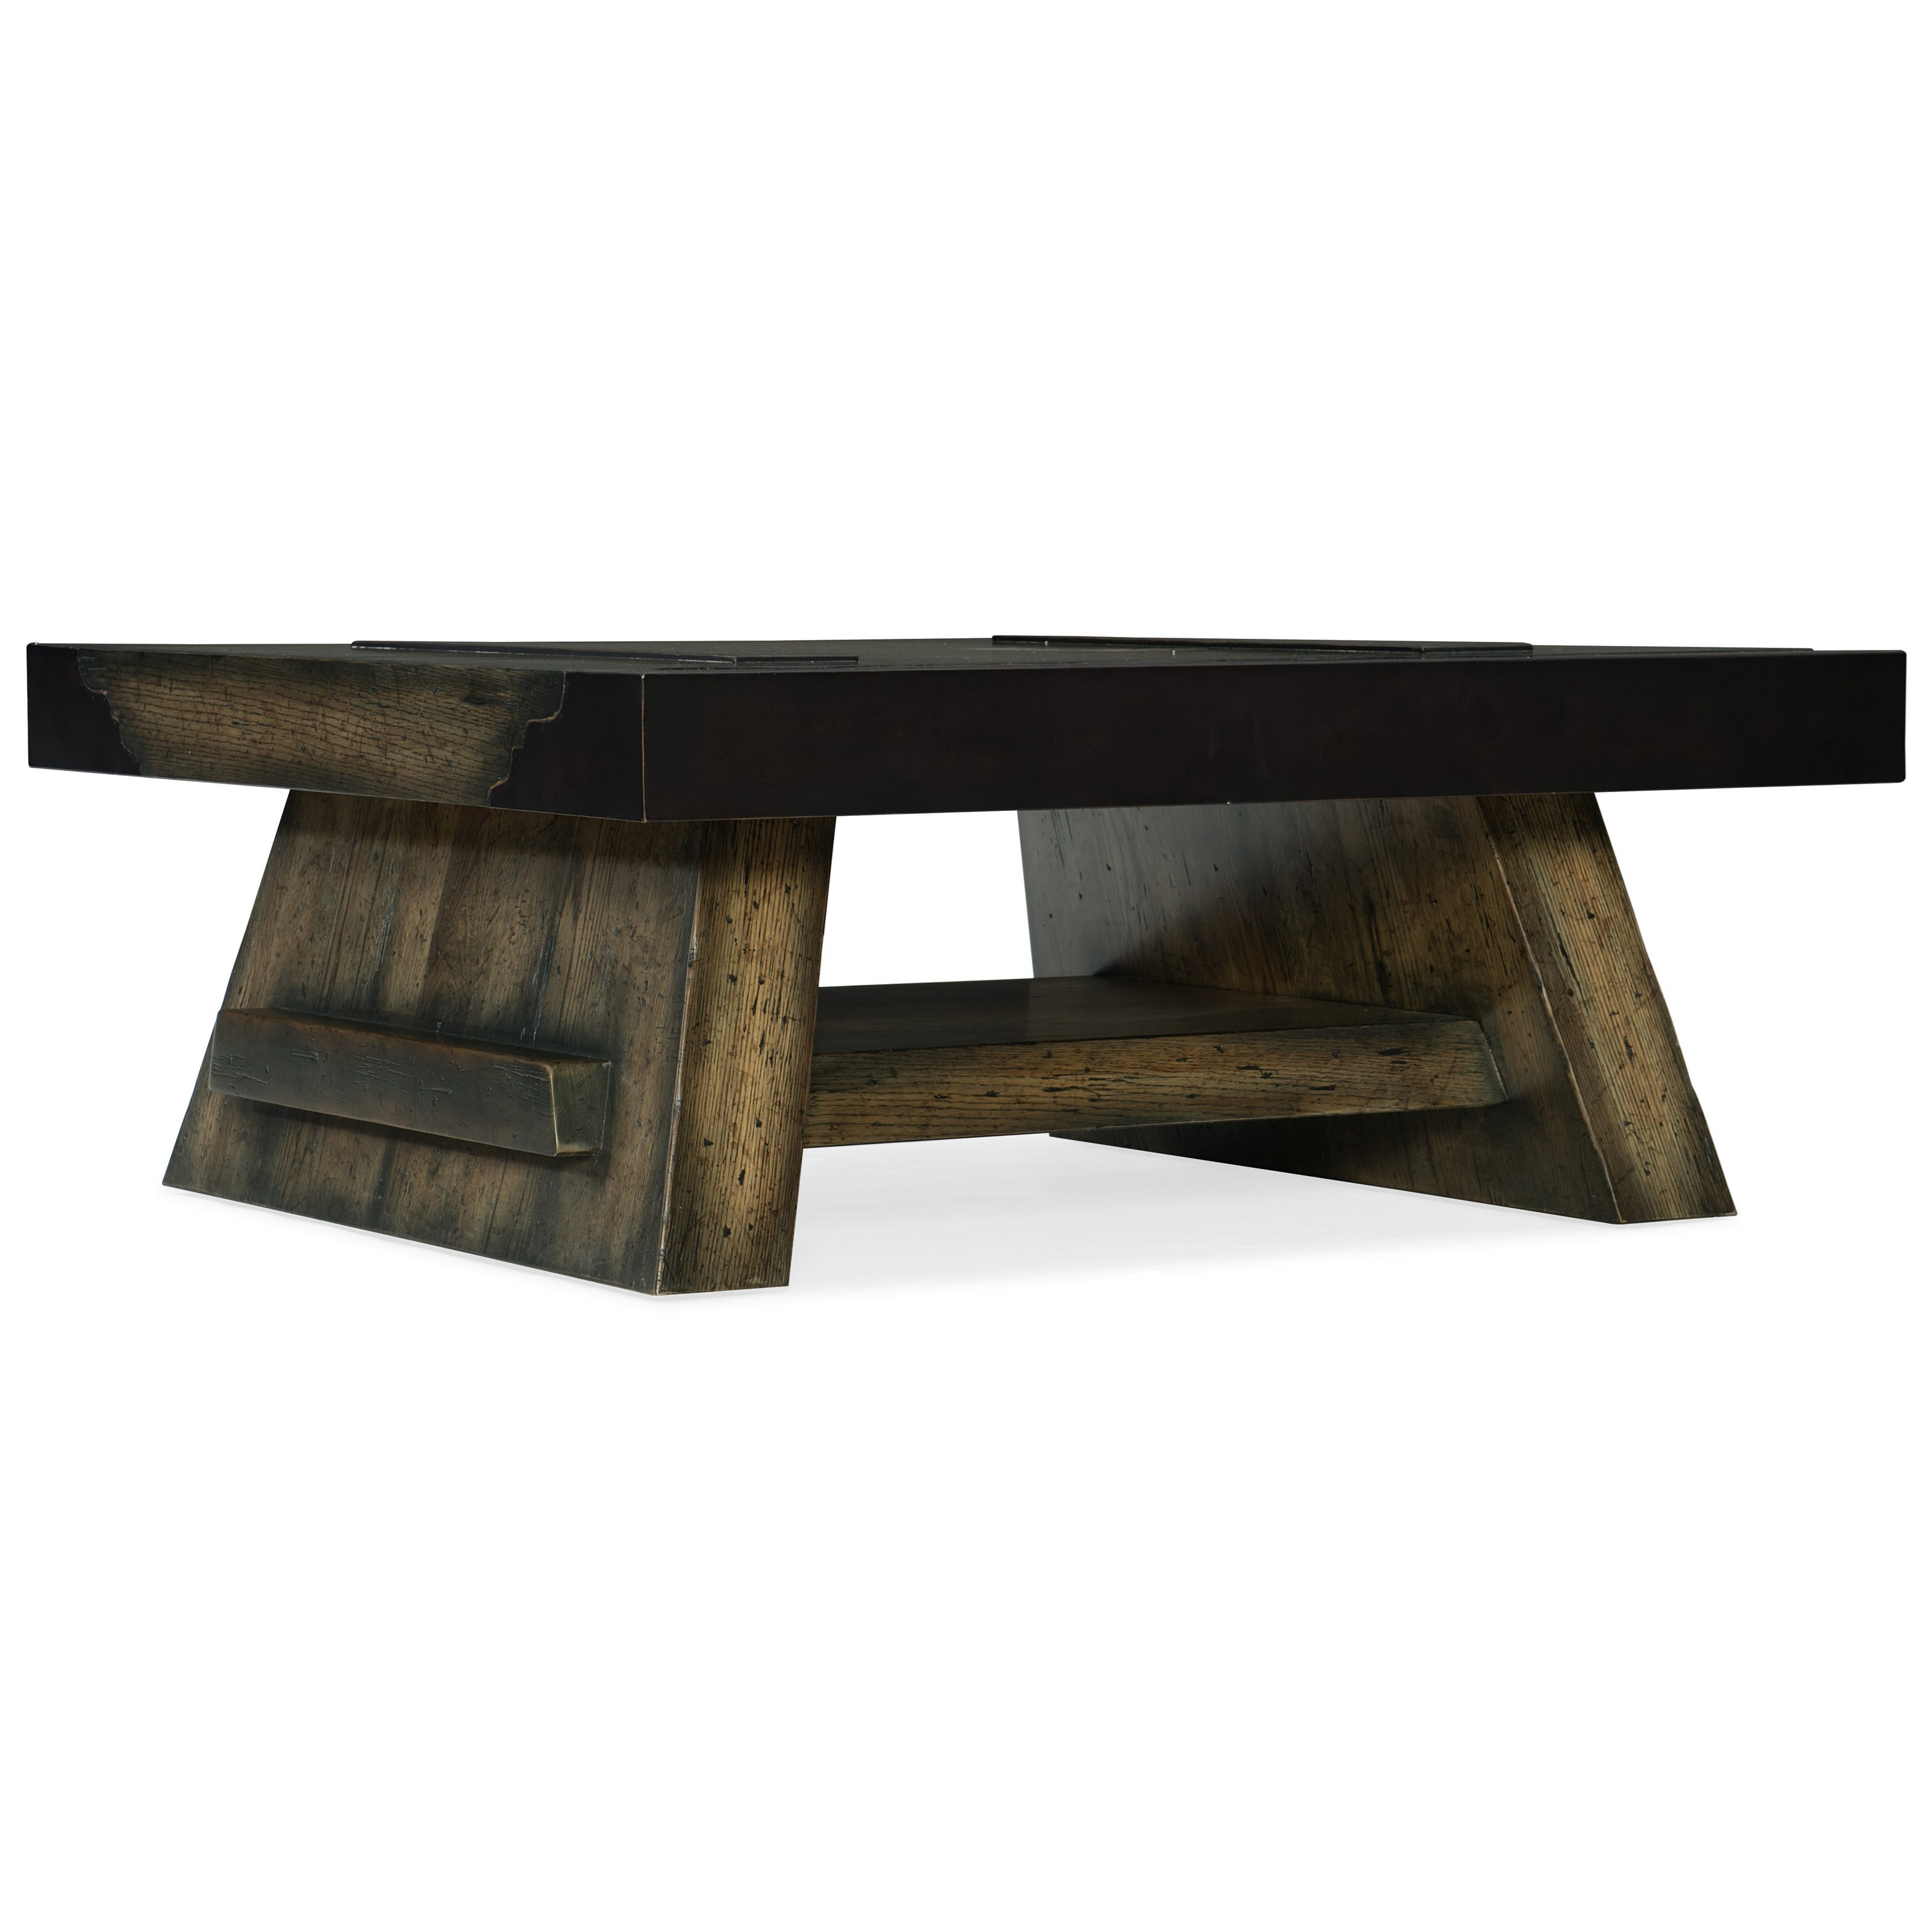 Hooker Furniture American Life-Crafted Cocktail Table - Item Number: 1654-80111-DKW1